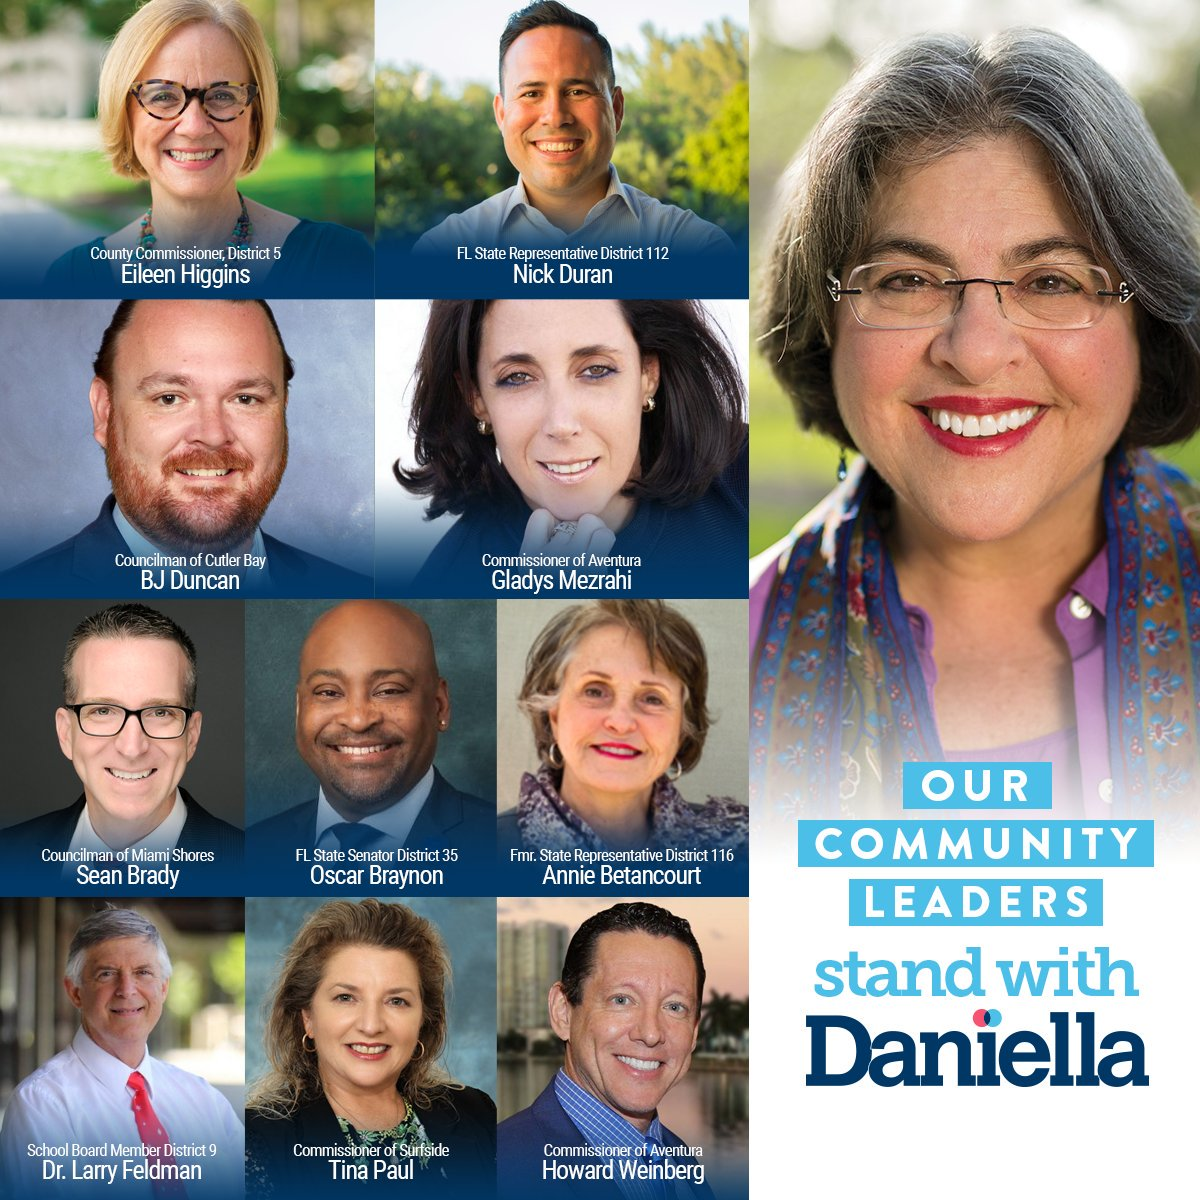 Humbled to have the trust & support of leaders in w/ a record of doing best by residents. That's what this campaign is about – restoring the promise that our local democracy will put its people's interests first & take bold actions that give everyone a fair shot. #WeMustDoBetter